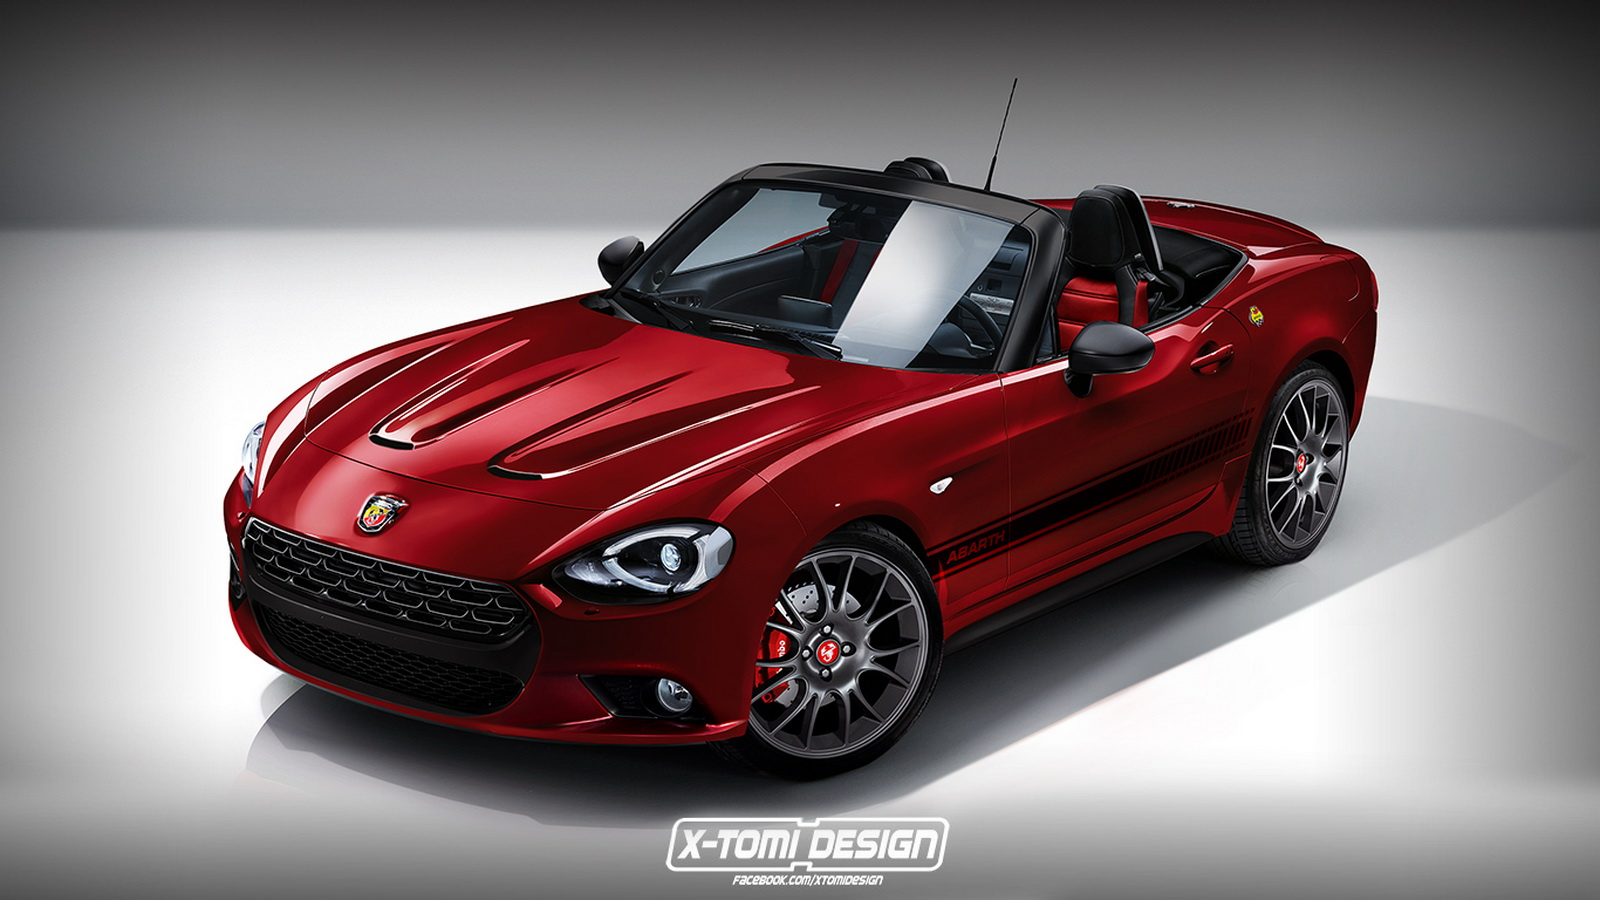 Fiat 124 spider adorned with abarth skin gtspirit for Fiat 124 spider motor